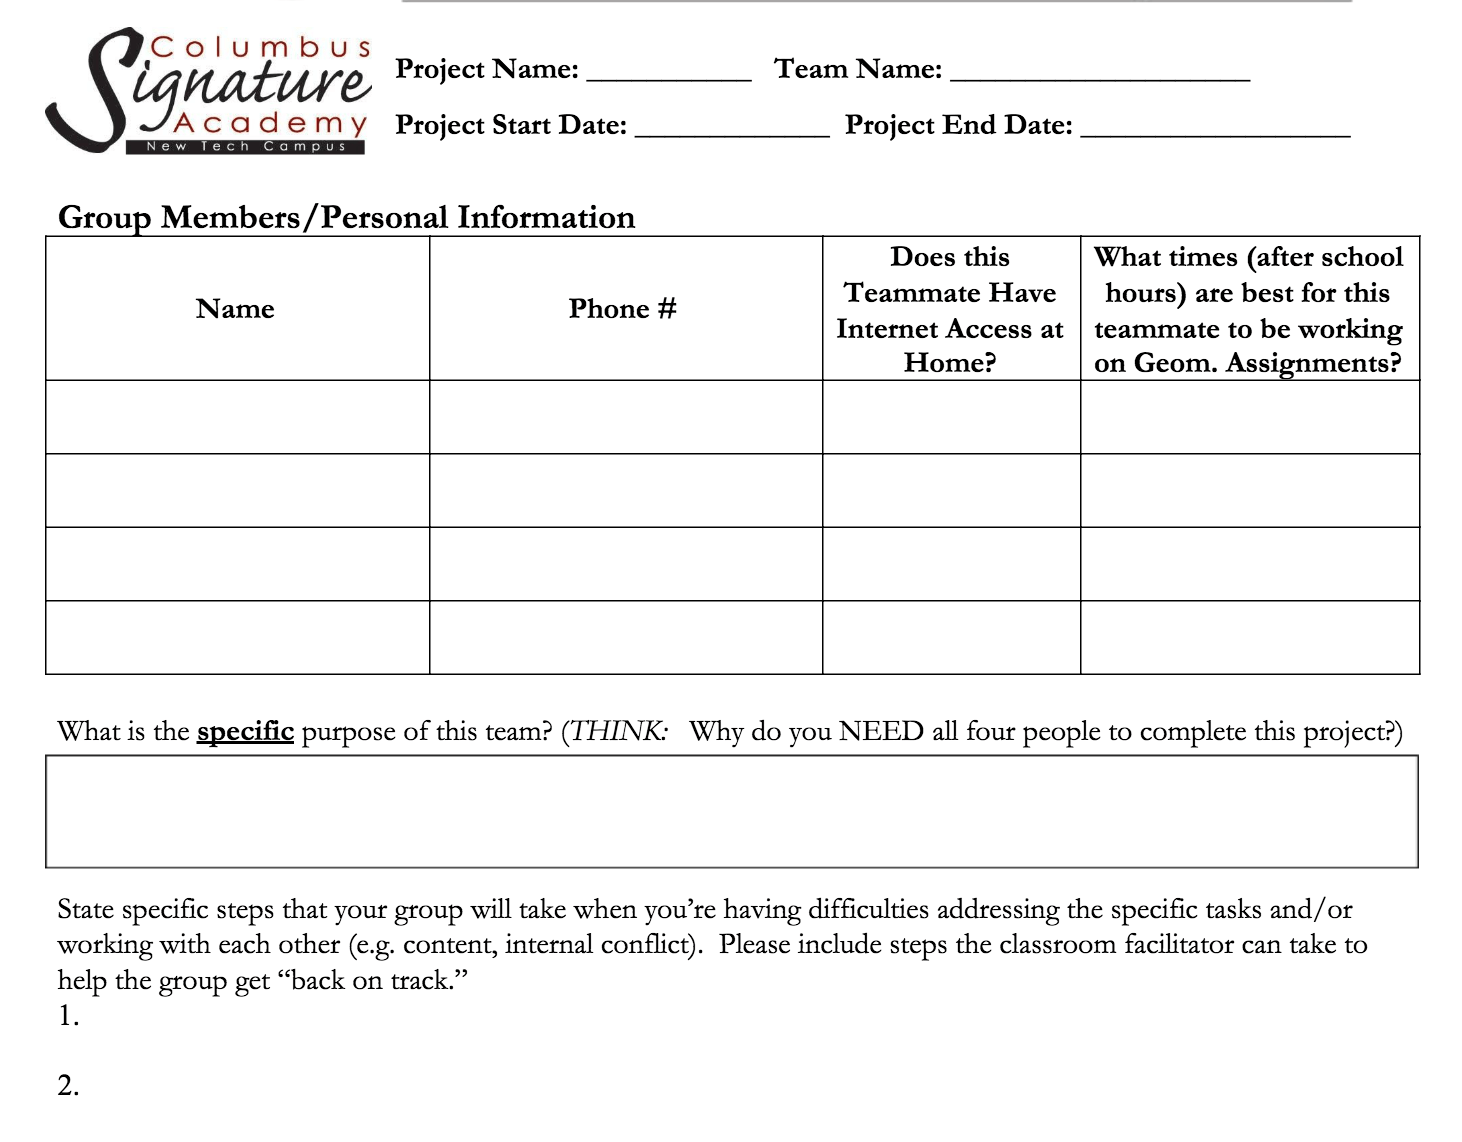 CSA Group Contract Example.png